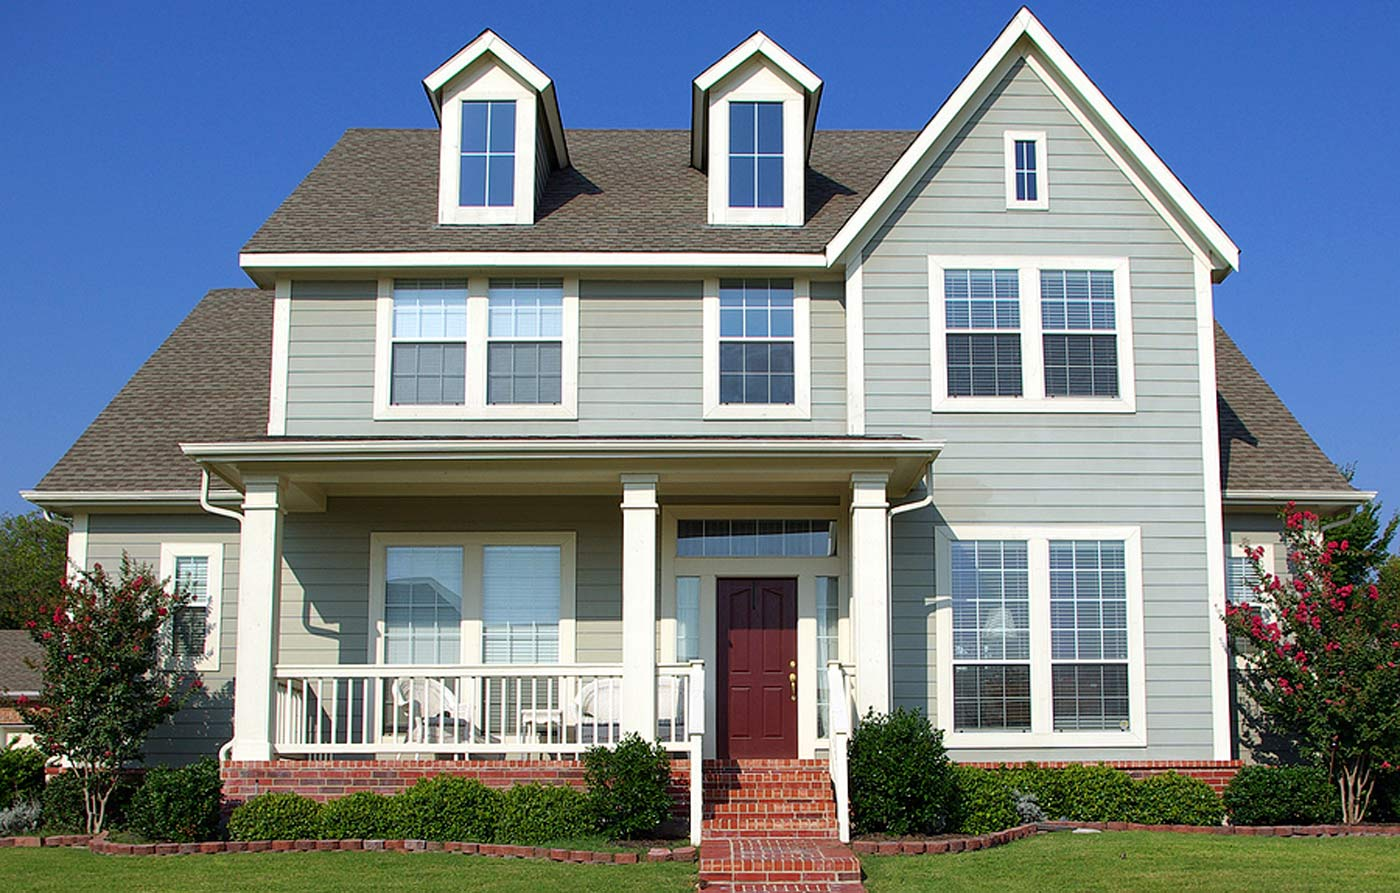 Harrisburg property management in NC